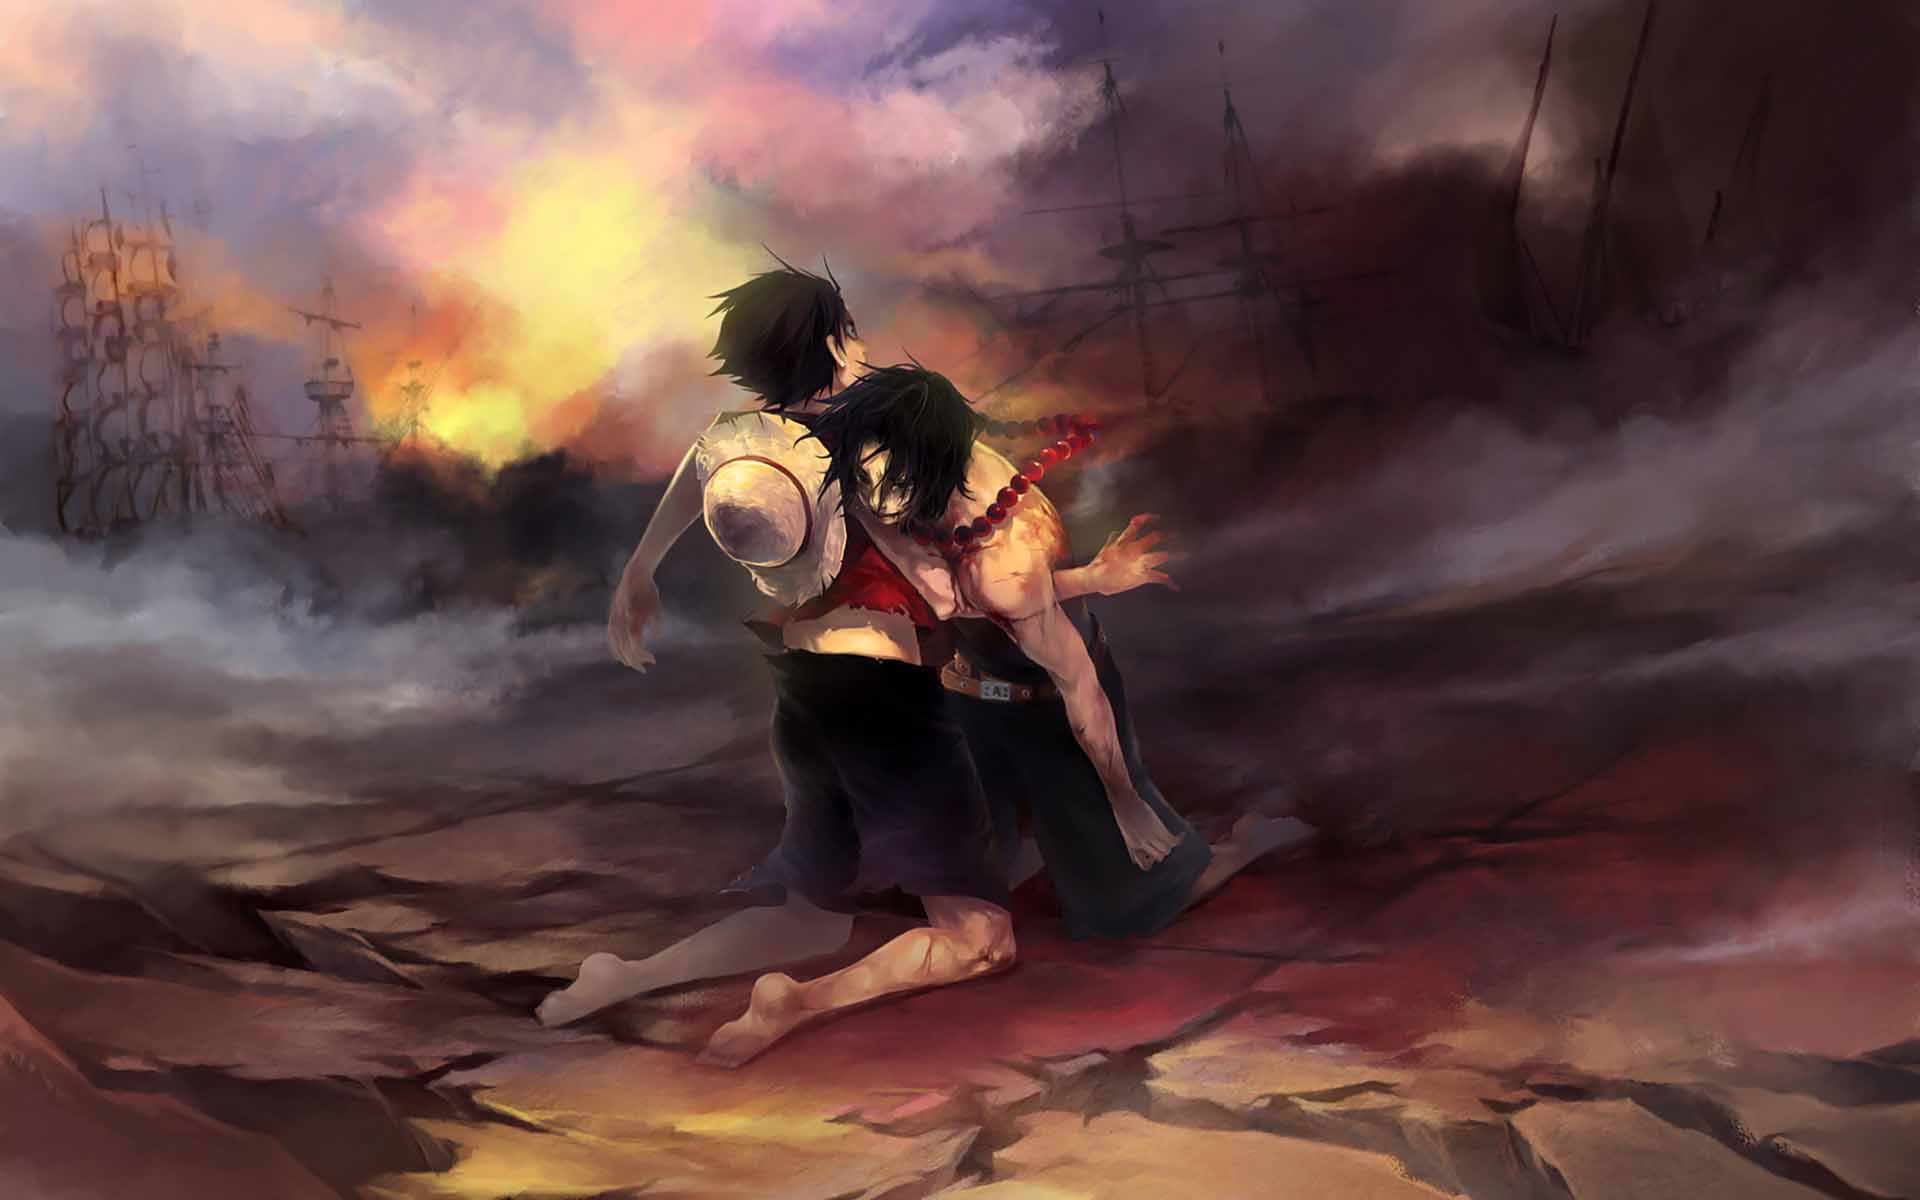 One Piece JP Anime Luffy And Ace HD Wallpaper   Stylish HD Wallpapers 1920x1200